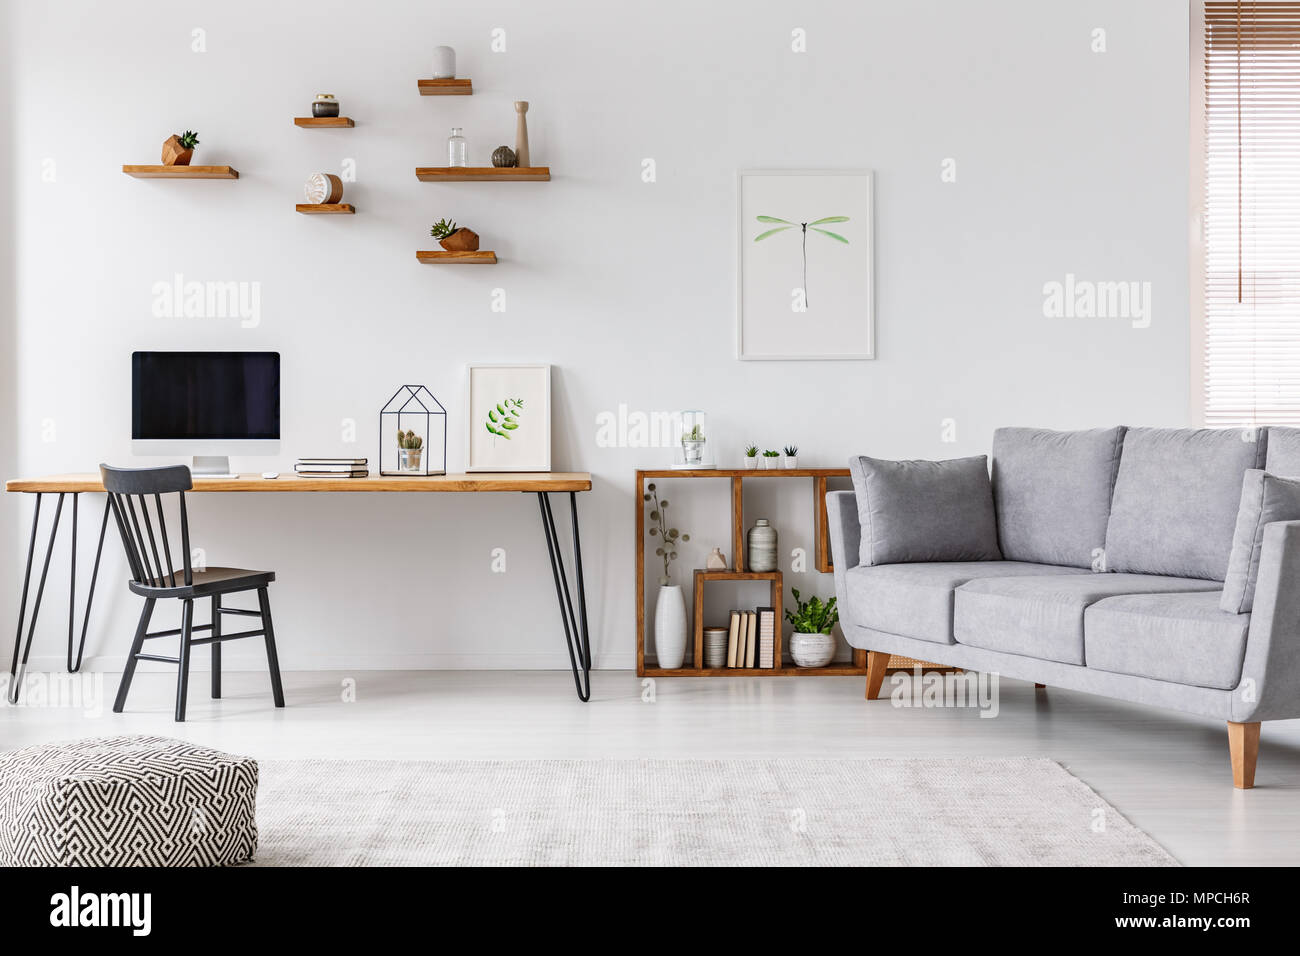 Grey sofa near black chair at desk with computer monitor in open space interior with poster. Real photo - Stock Image